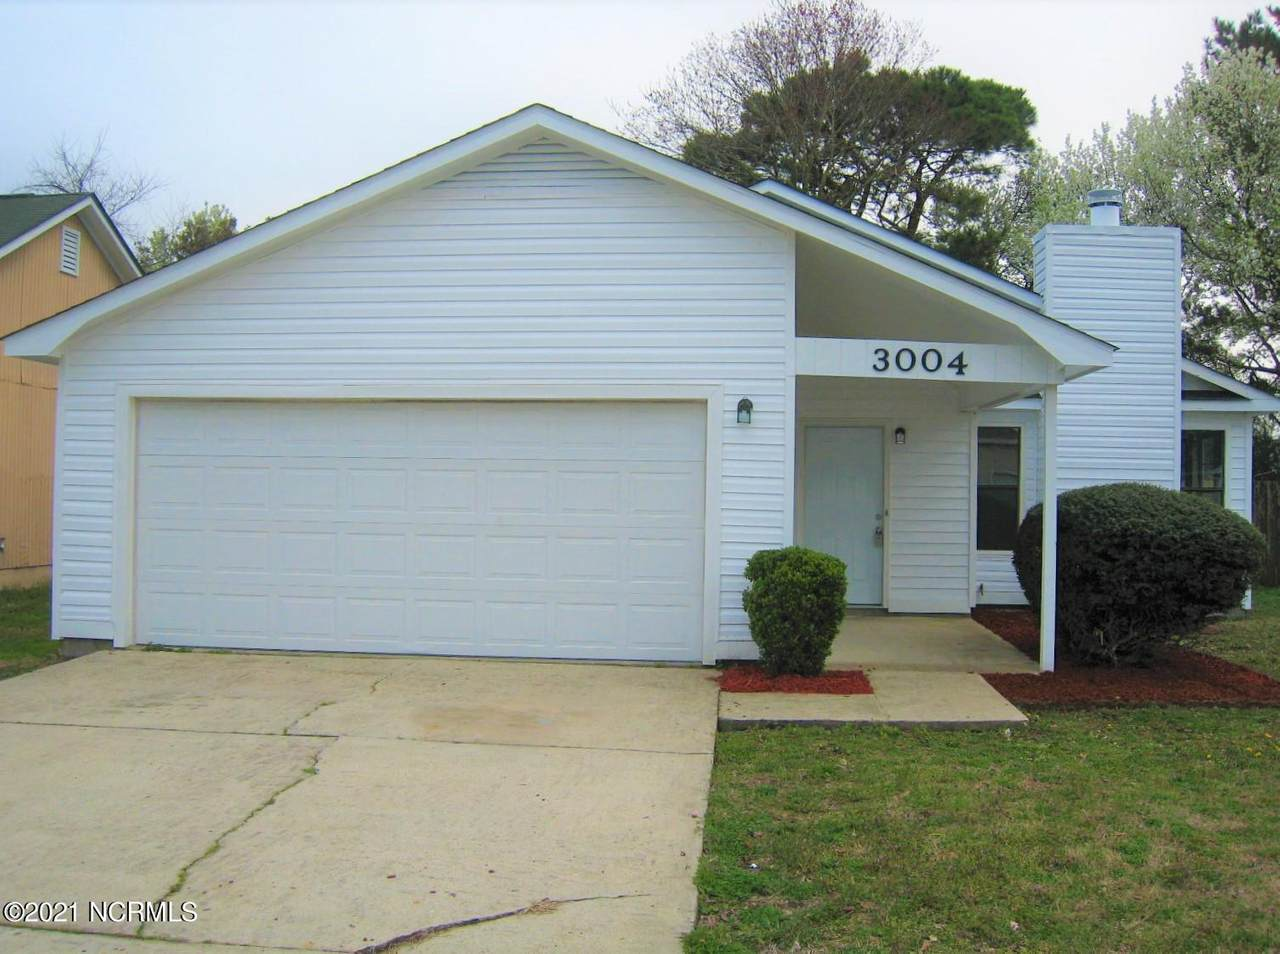 3004 Steeple Chase Court - Photo 1